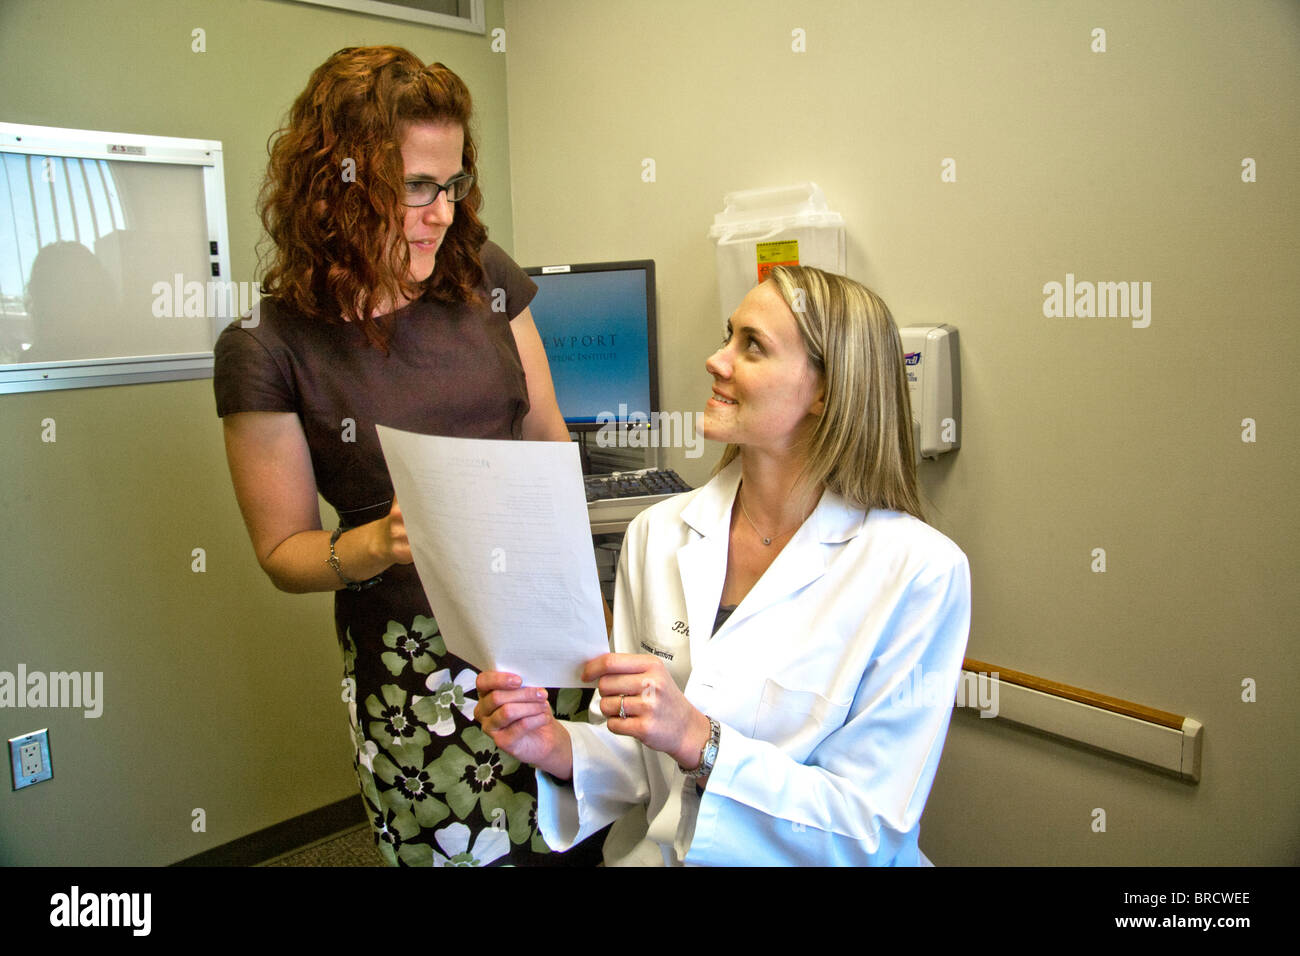 A doctor and her patient read a document of mutual interest at a Newport Beach, CA, medical clinic. MODEL RELEASE - Stock Image